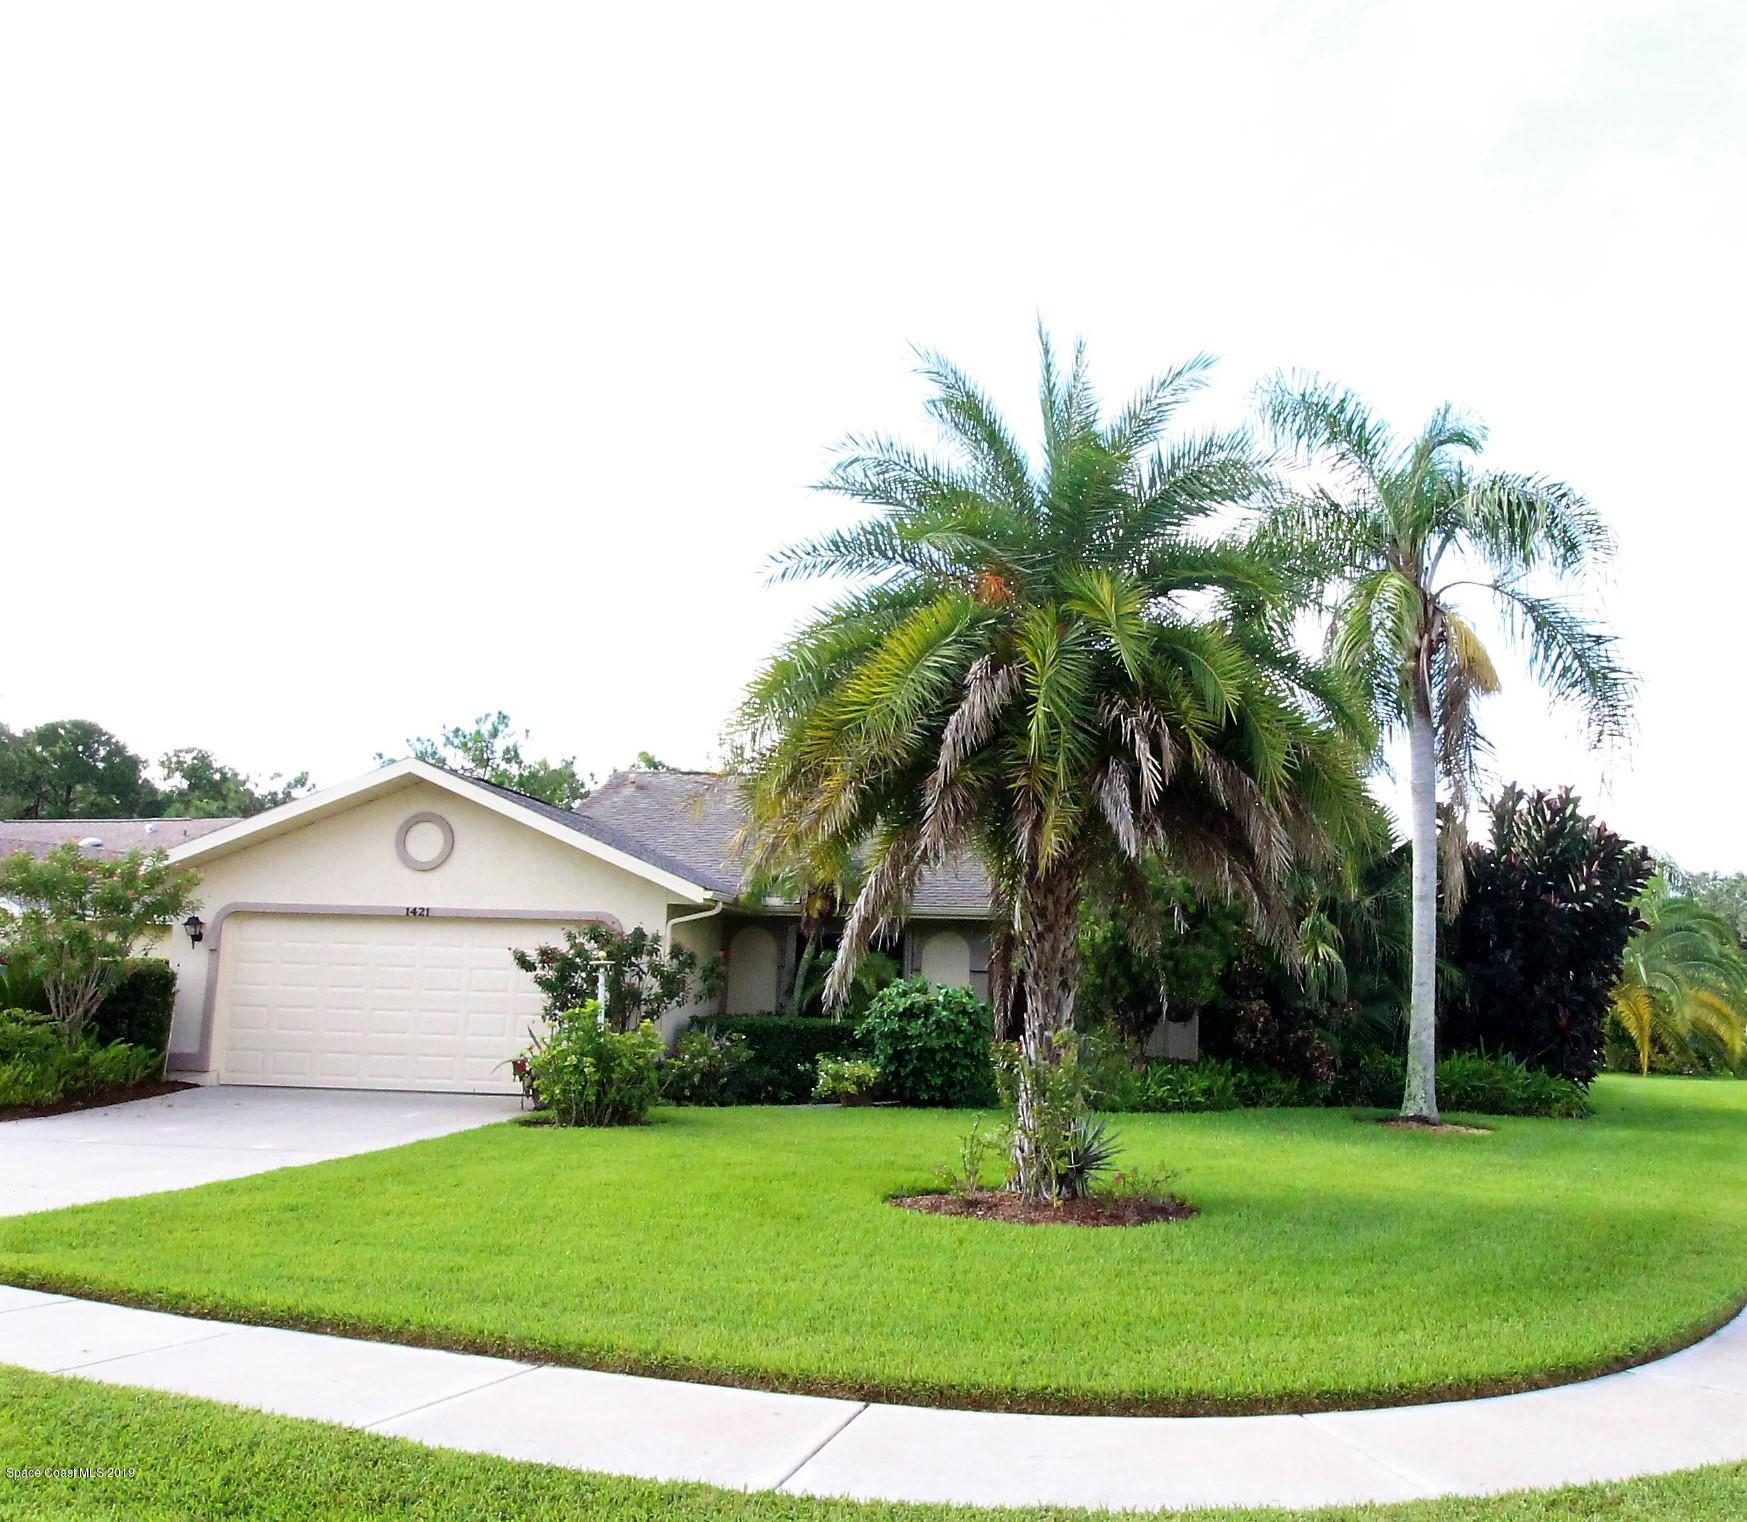 Single Family Homes for Sale at 1421 Republic Melbourne, Florida 32940 United States